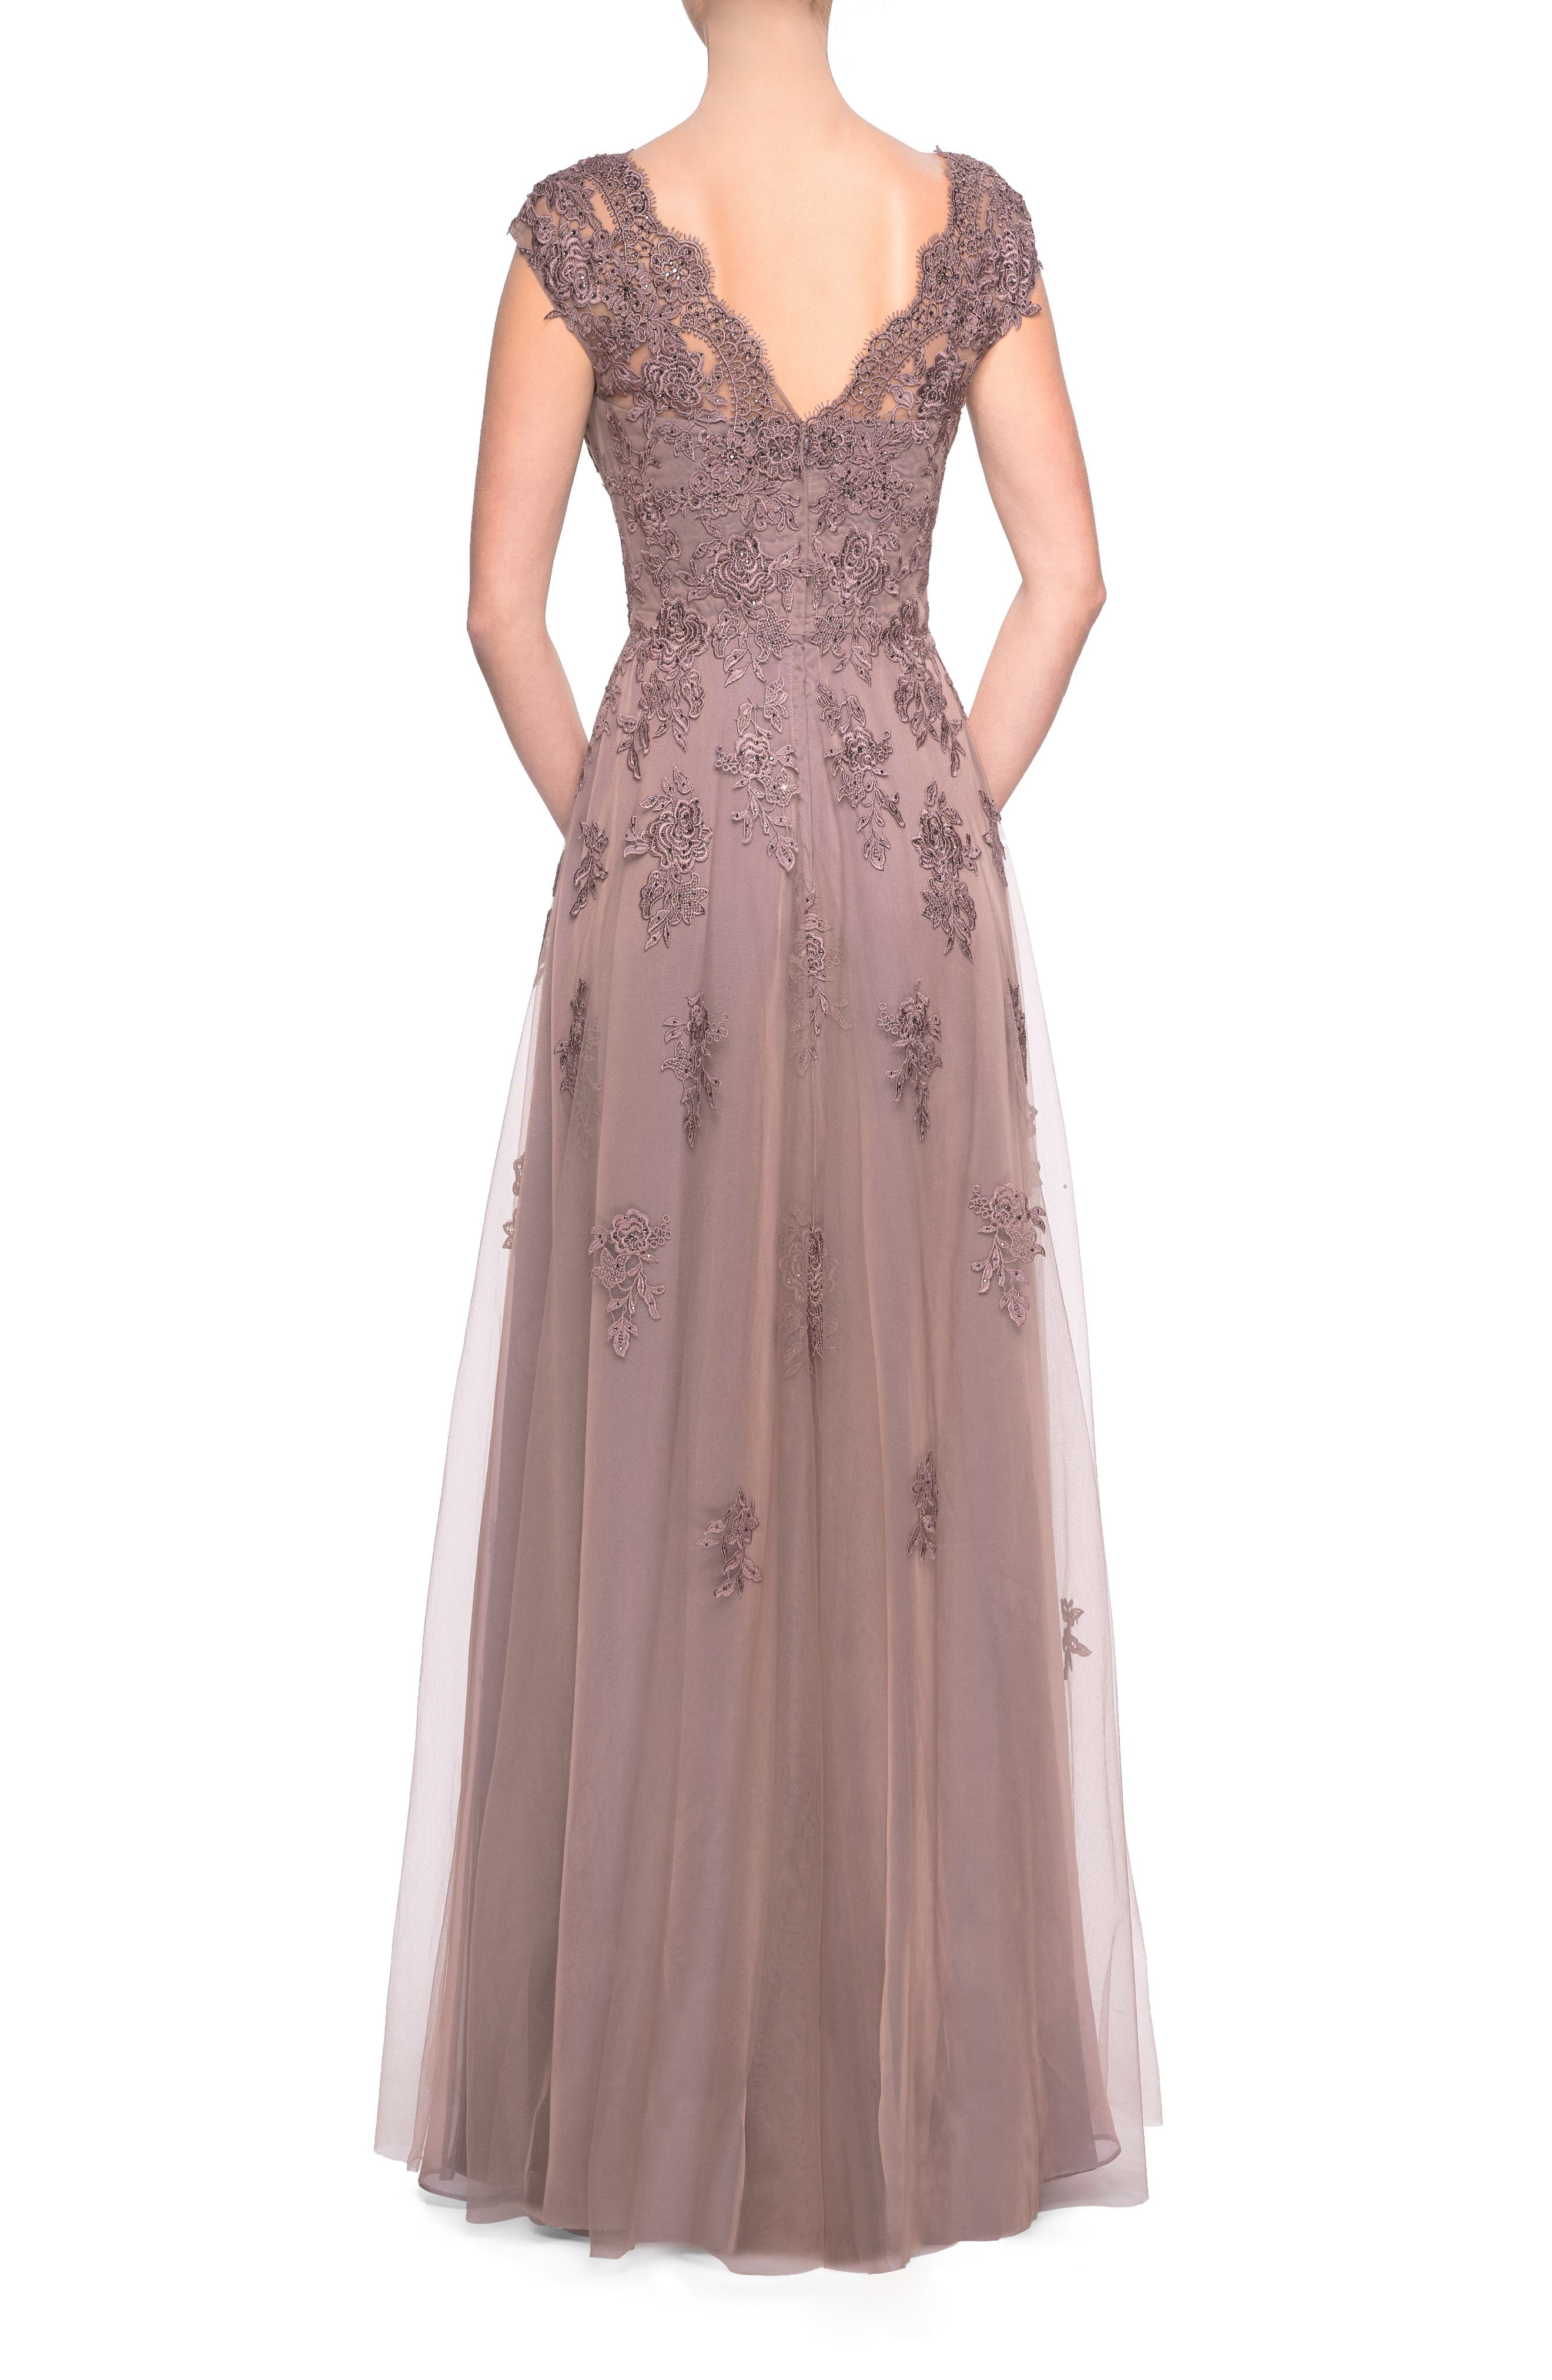 Tulle & Lace Evening Dress,                             Alternate thumbnail 2, color,                             COCOA